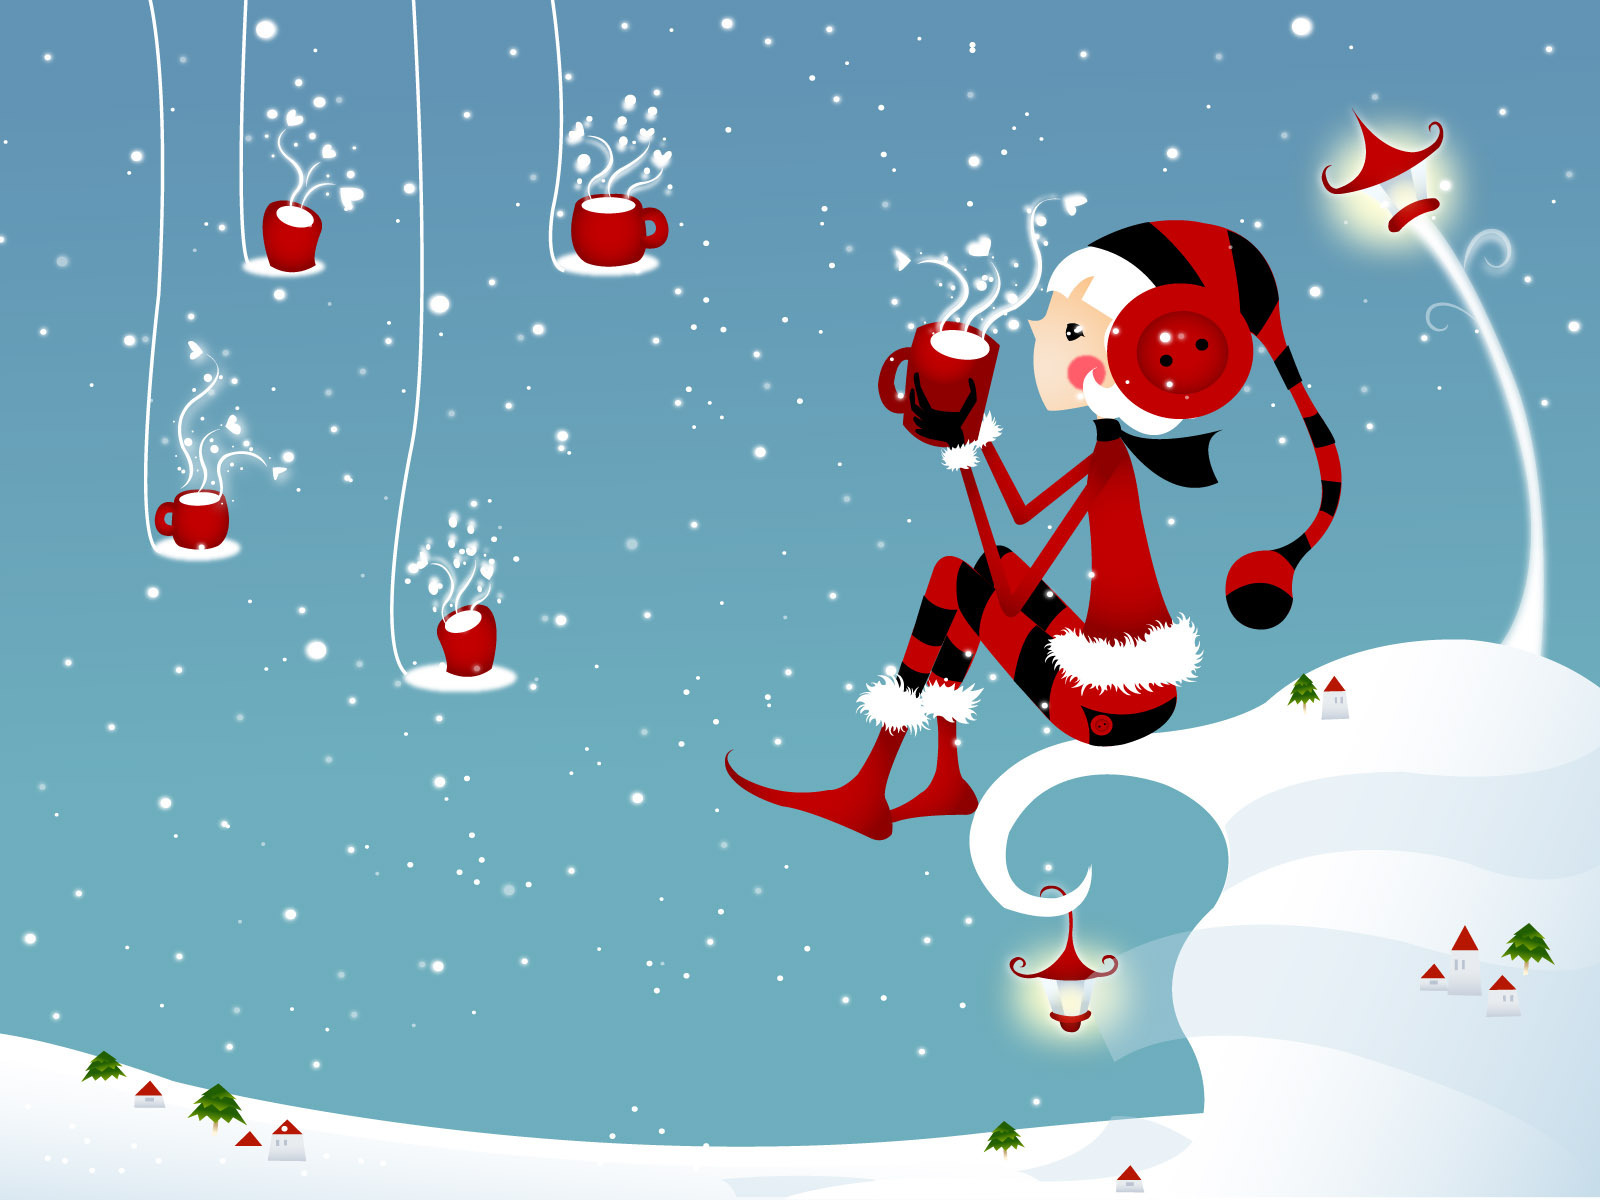 Christmas Pc Wallpaper Free hd image